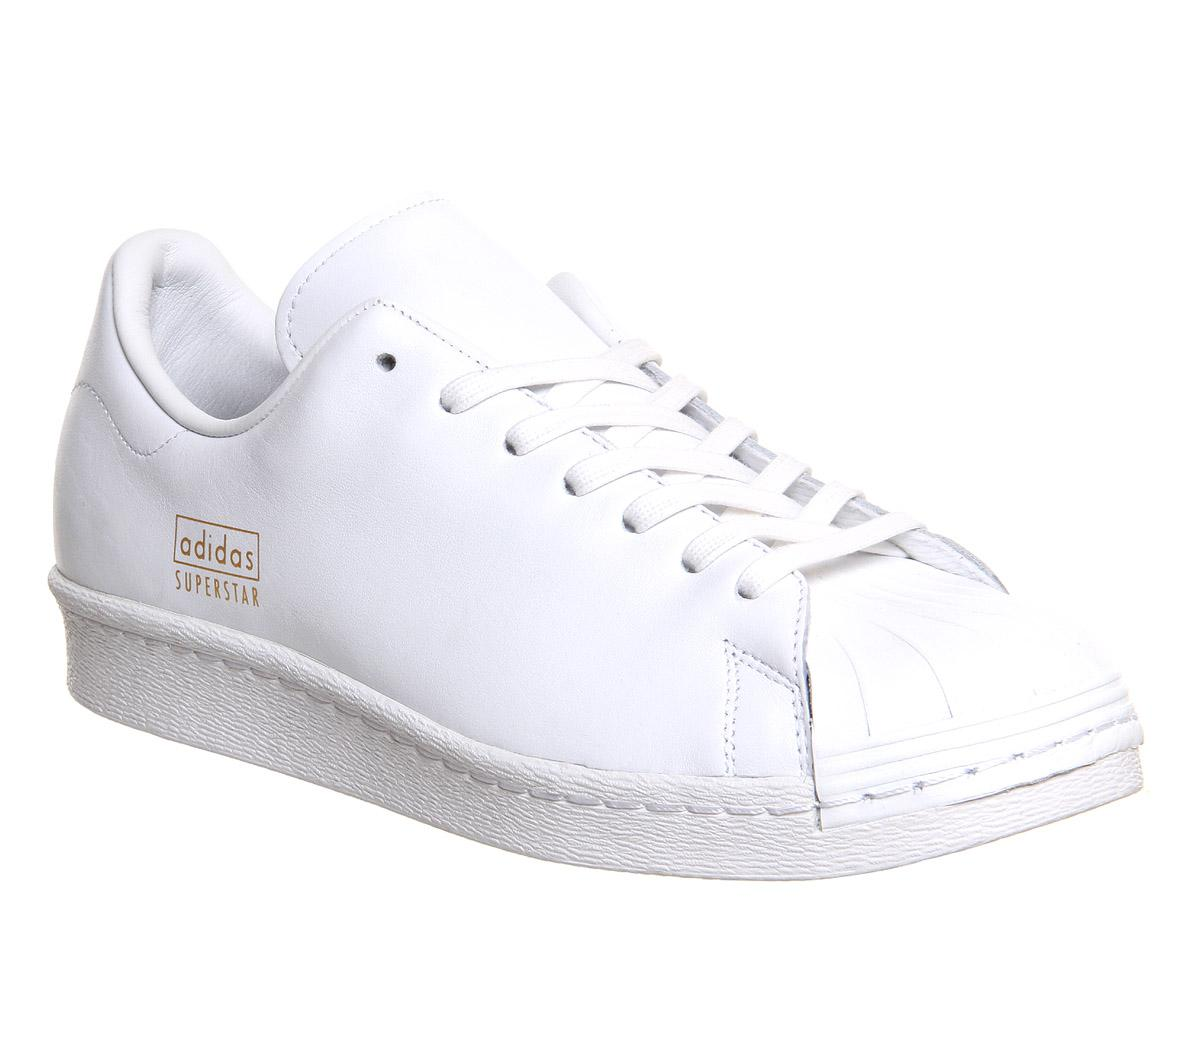 Clean Adidas 80s Superstar White All Yf7bgv6y